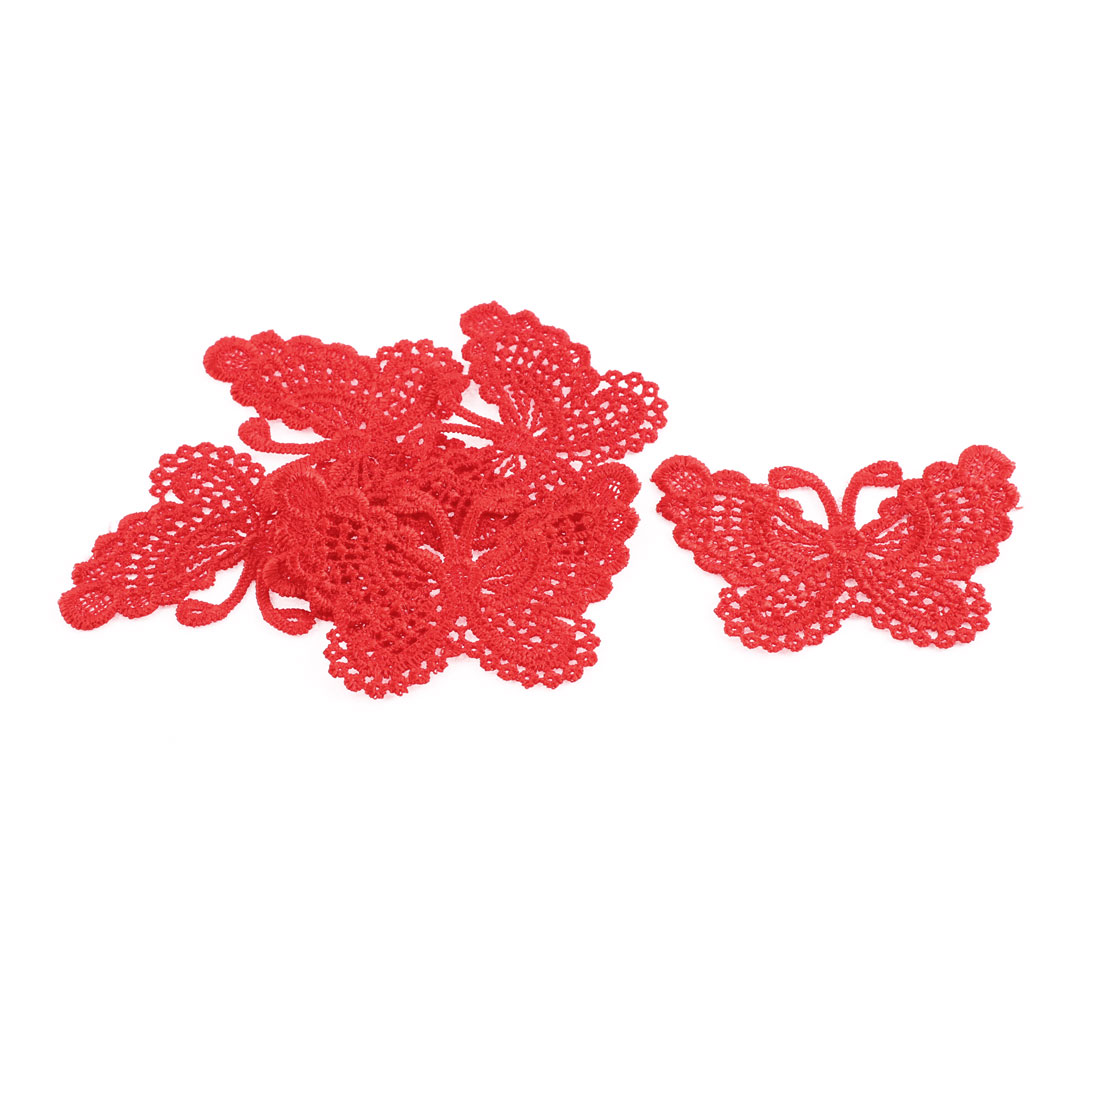 Costume Dress Butterfly Shaped Lace Trims Applique Sewing Craft Red 5 Pcs